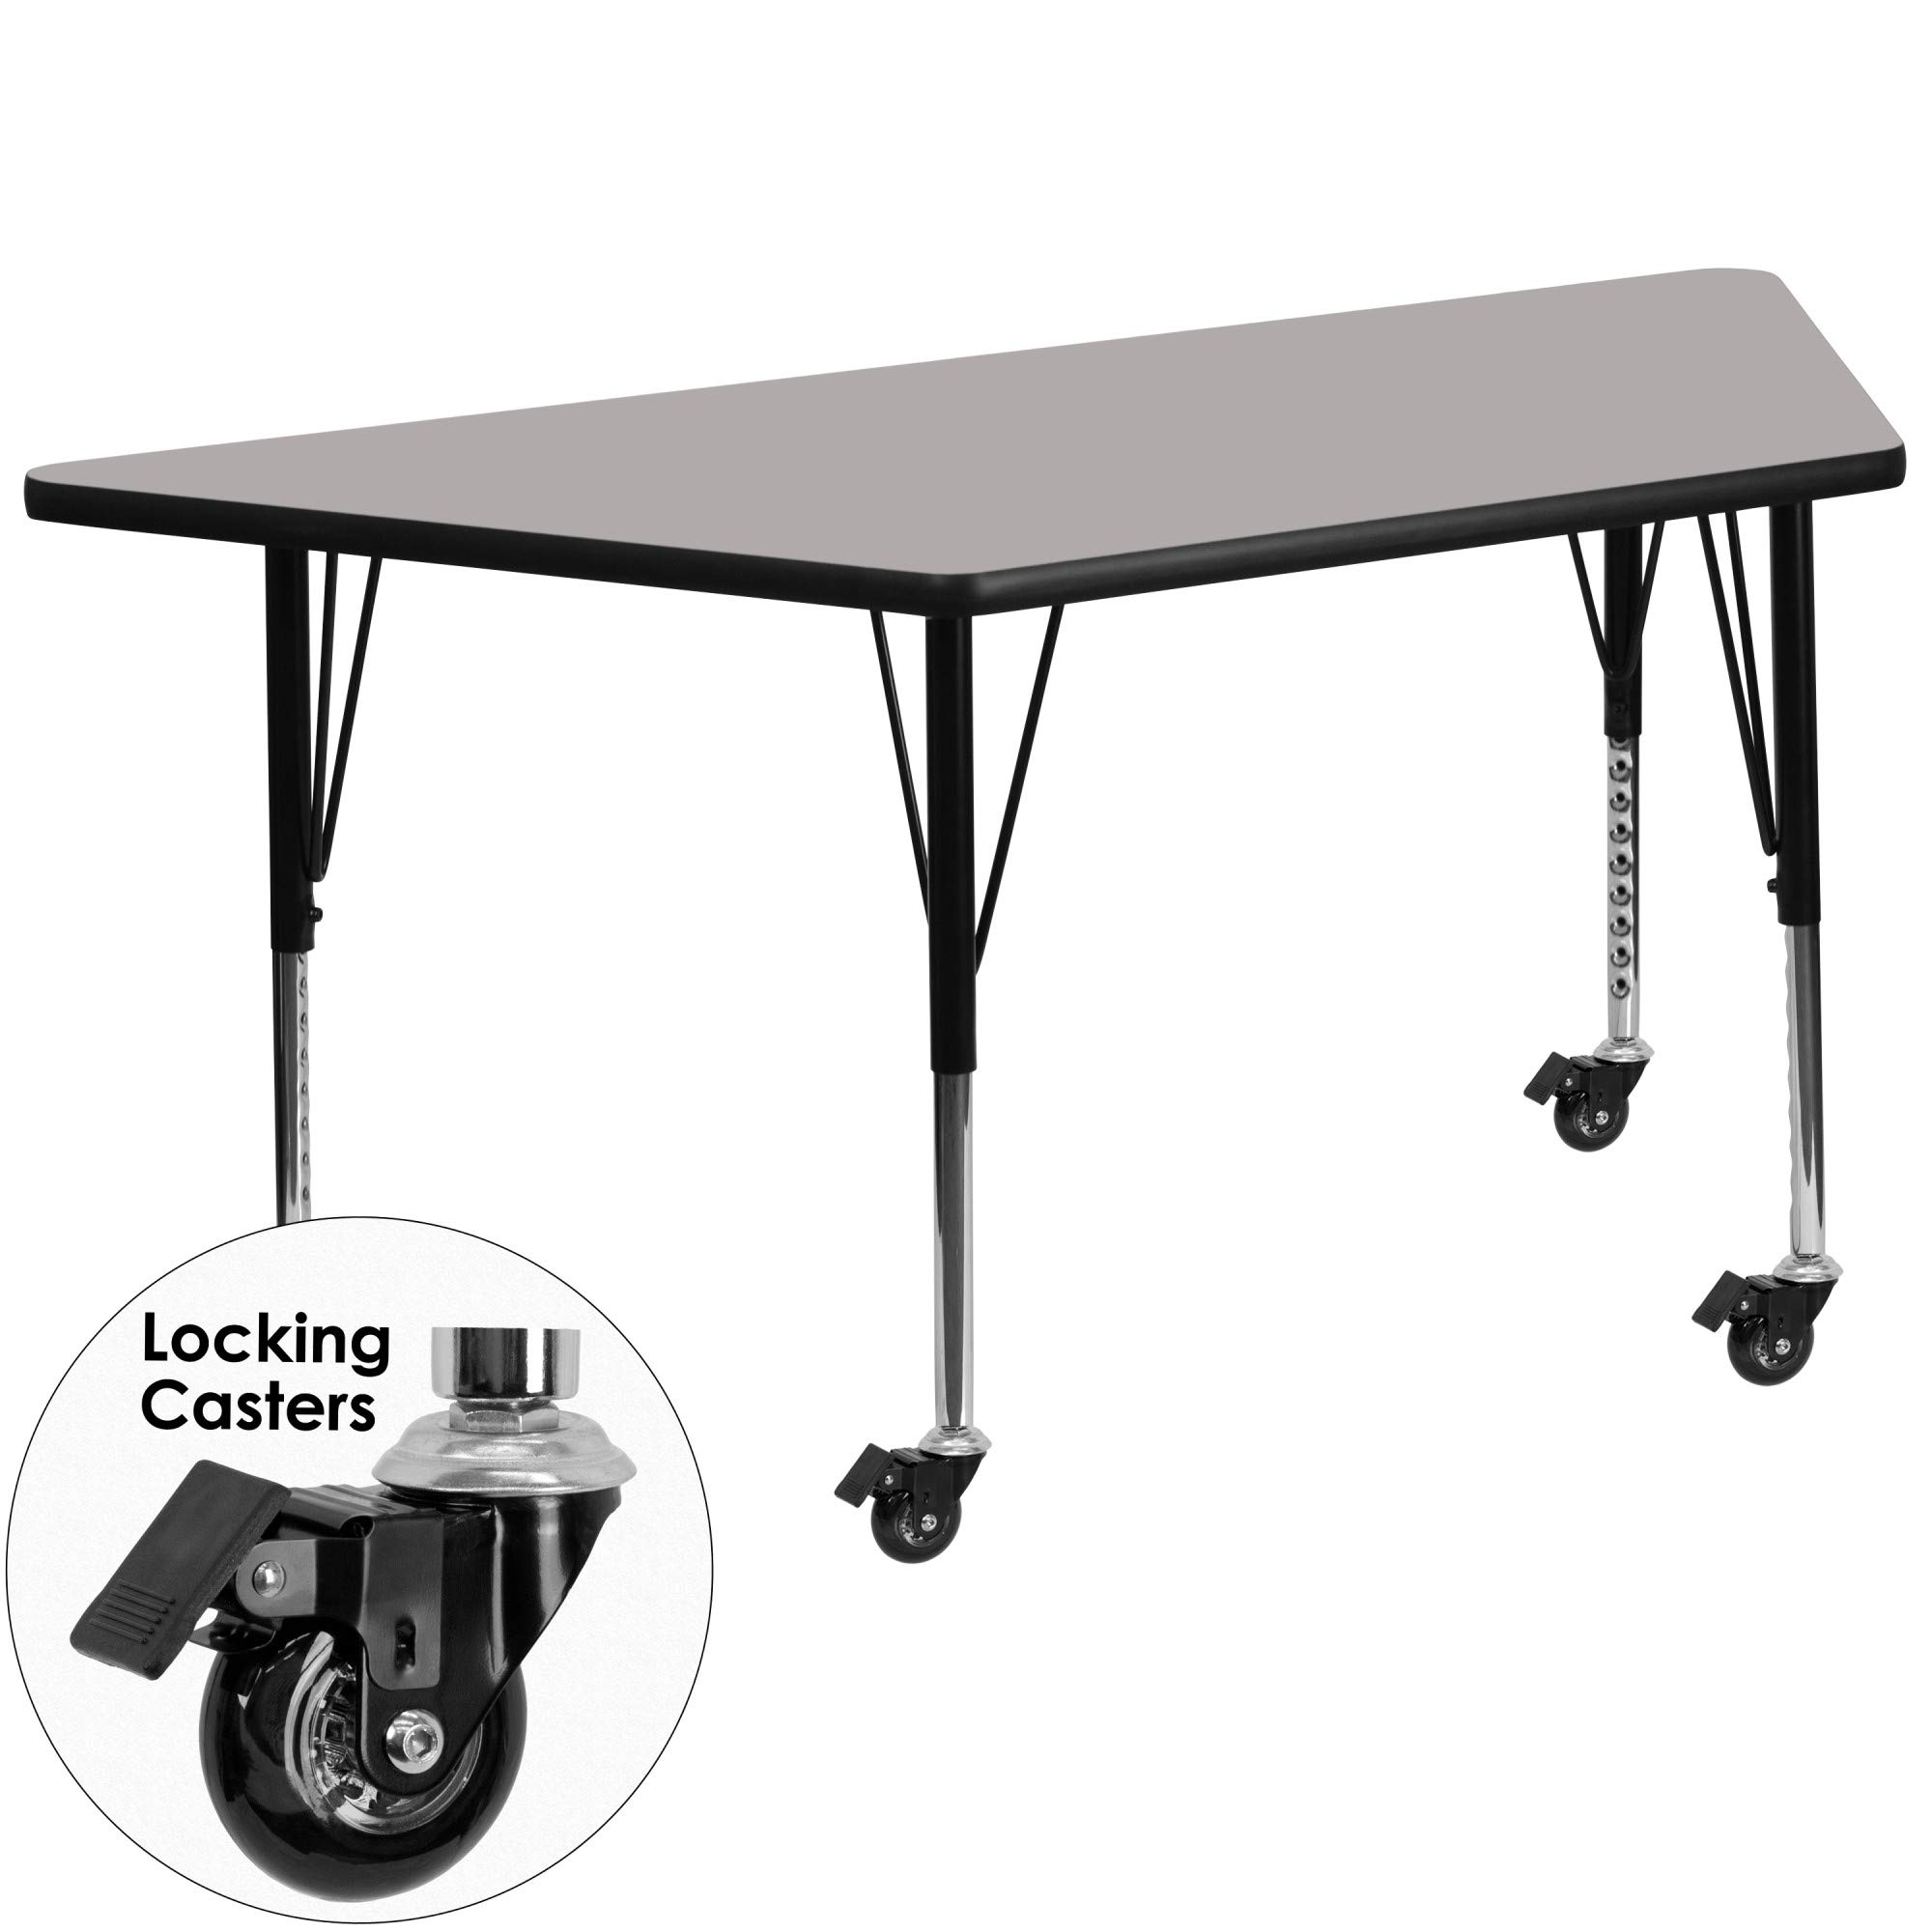 Delacora XU-A2448-TRAP-GY-H-P-CAS-GG 25-1/2 Inch Wide Steel Framed Wood Top Adjustable Activity Table with Locking Casters